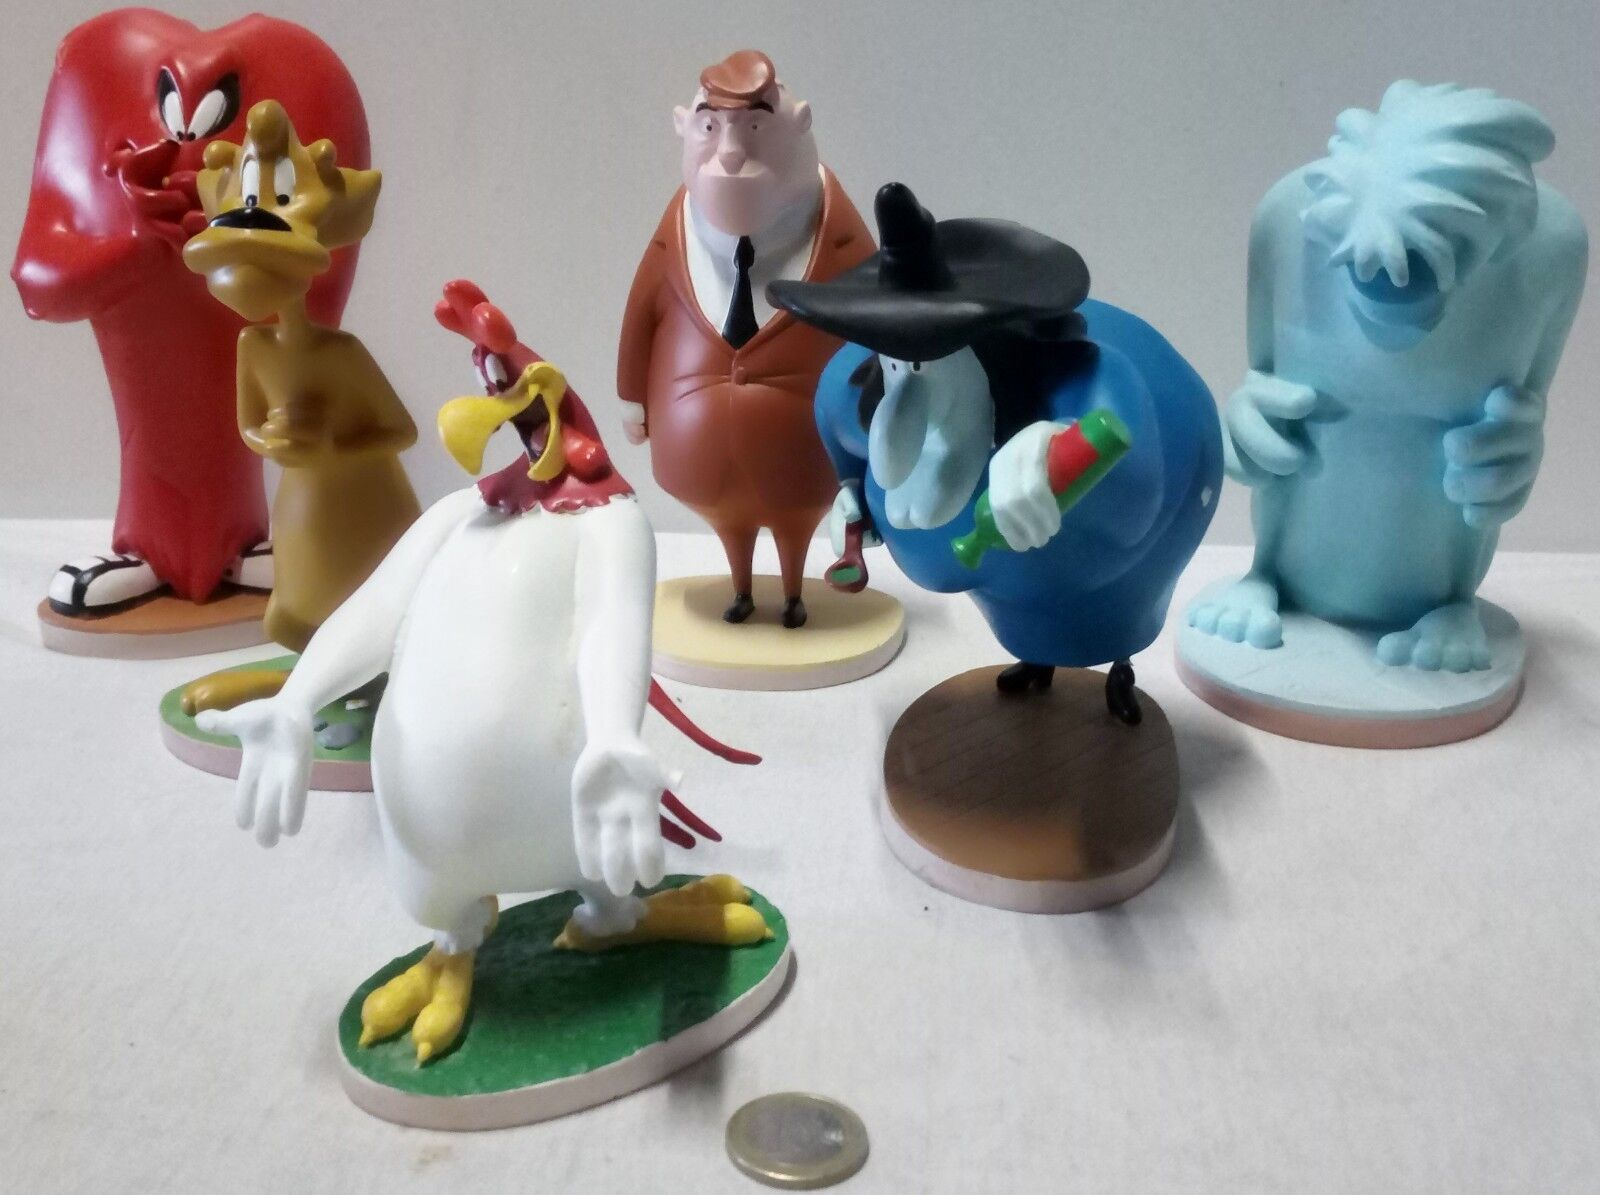 COLLECTION LOONEY TOONS- FIGURINES RESINE RESINE RESINE GRANDS PERSONNAGES 61385b